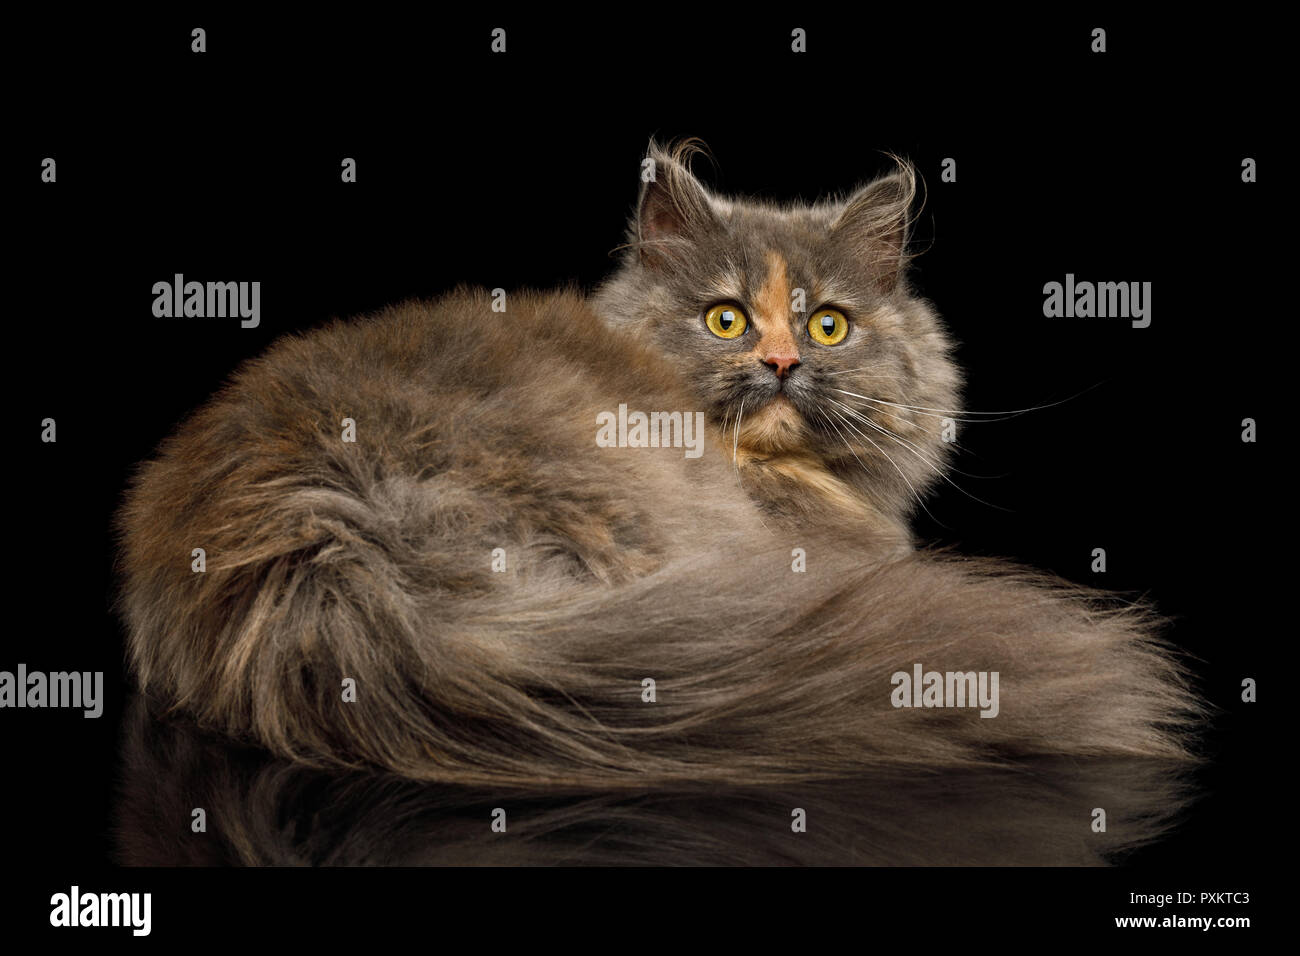 Short Munchkin Cat tortoise fur Lying and Looking back on Isolated Black background - Stock Image